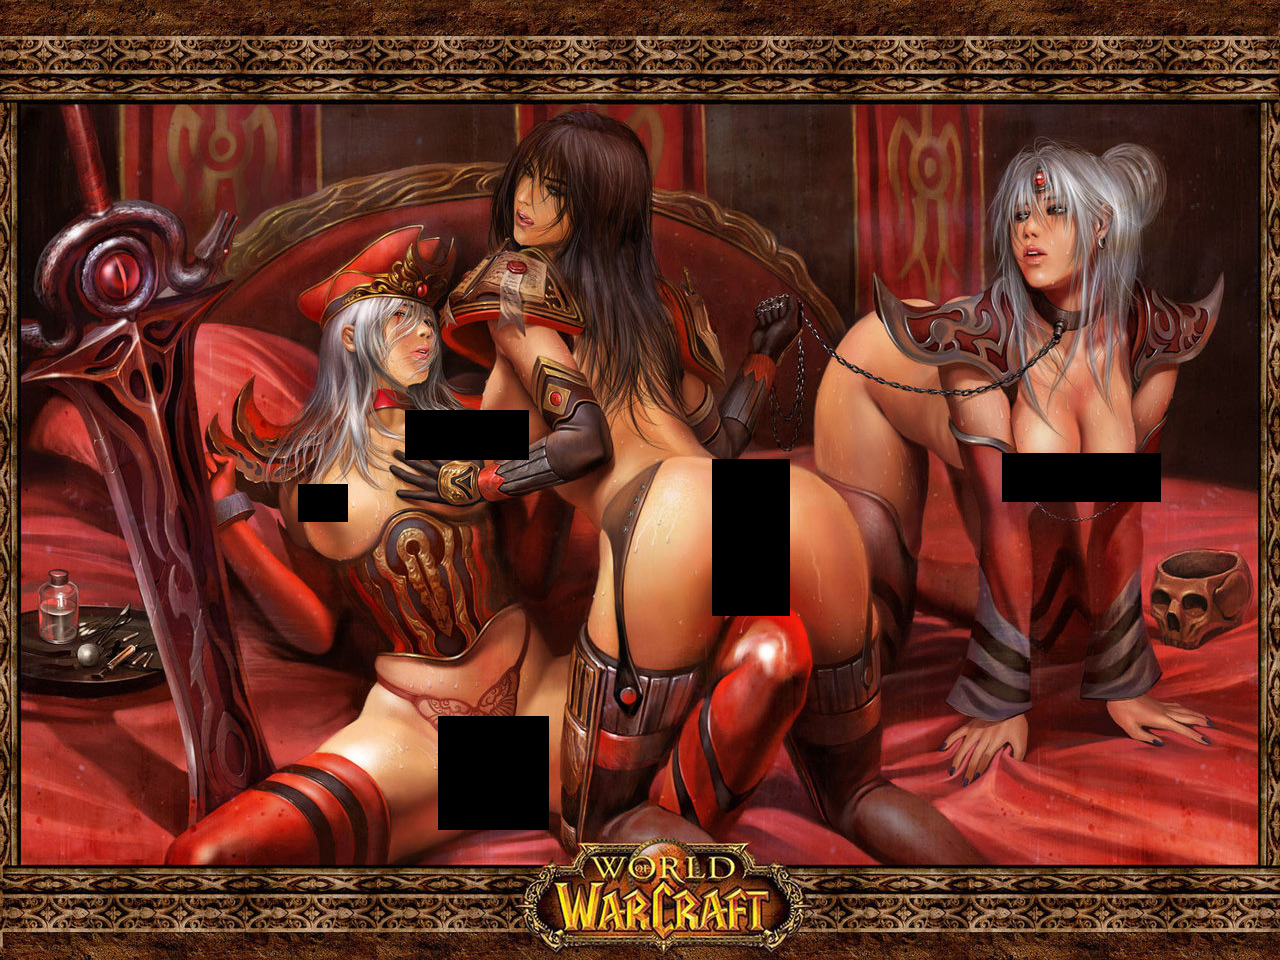 World of warcraft nude jai porn movies